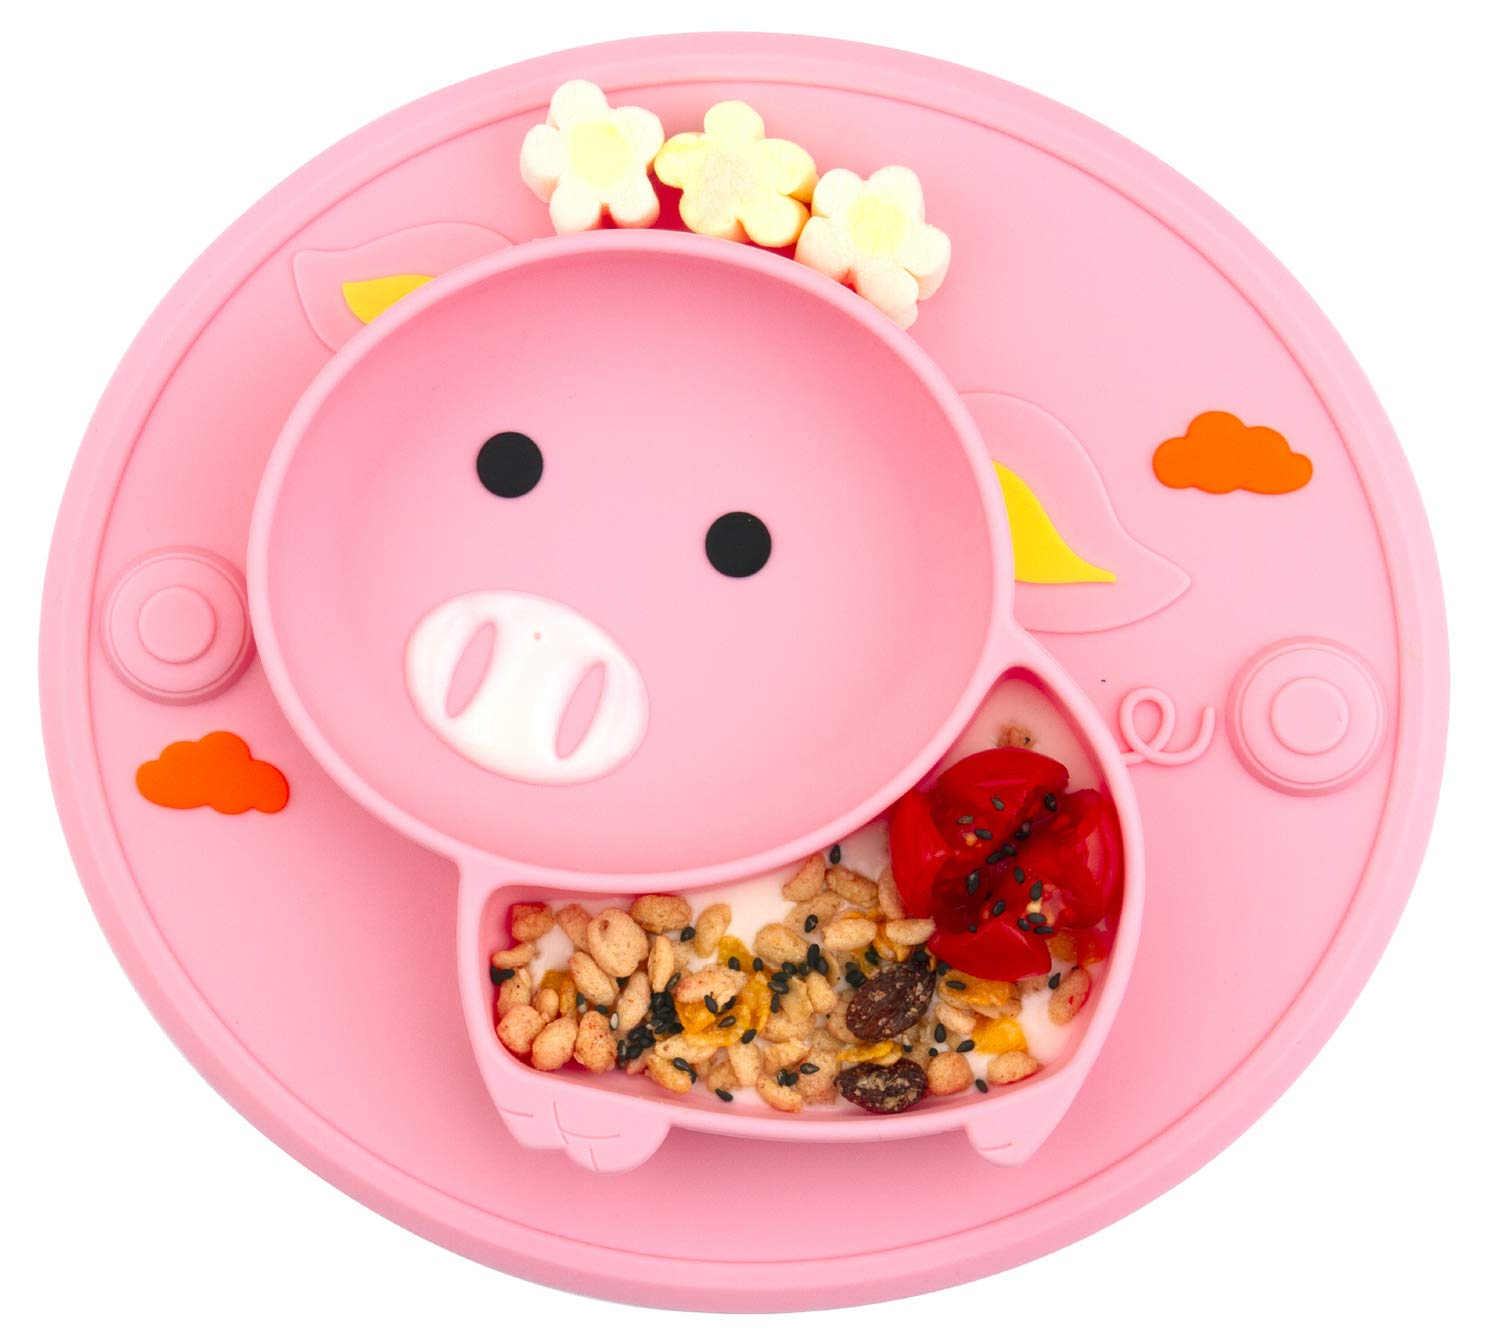 Baby Divided Plate Silicone- Portable Non Slip Child Feeding Plate with Suction Cup for Children Babies and Kids BPA Free Baby Dinner Plate Microwave Dishwasher Safe